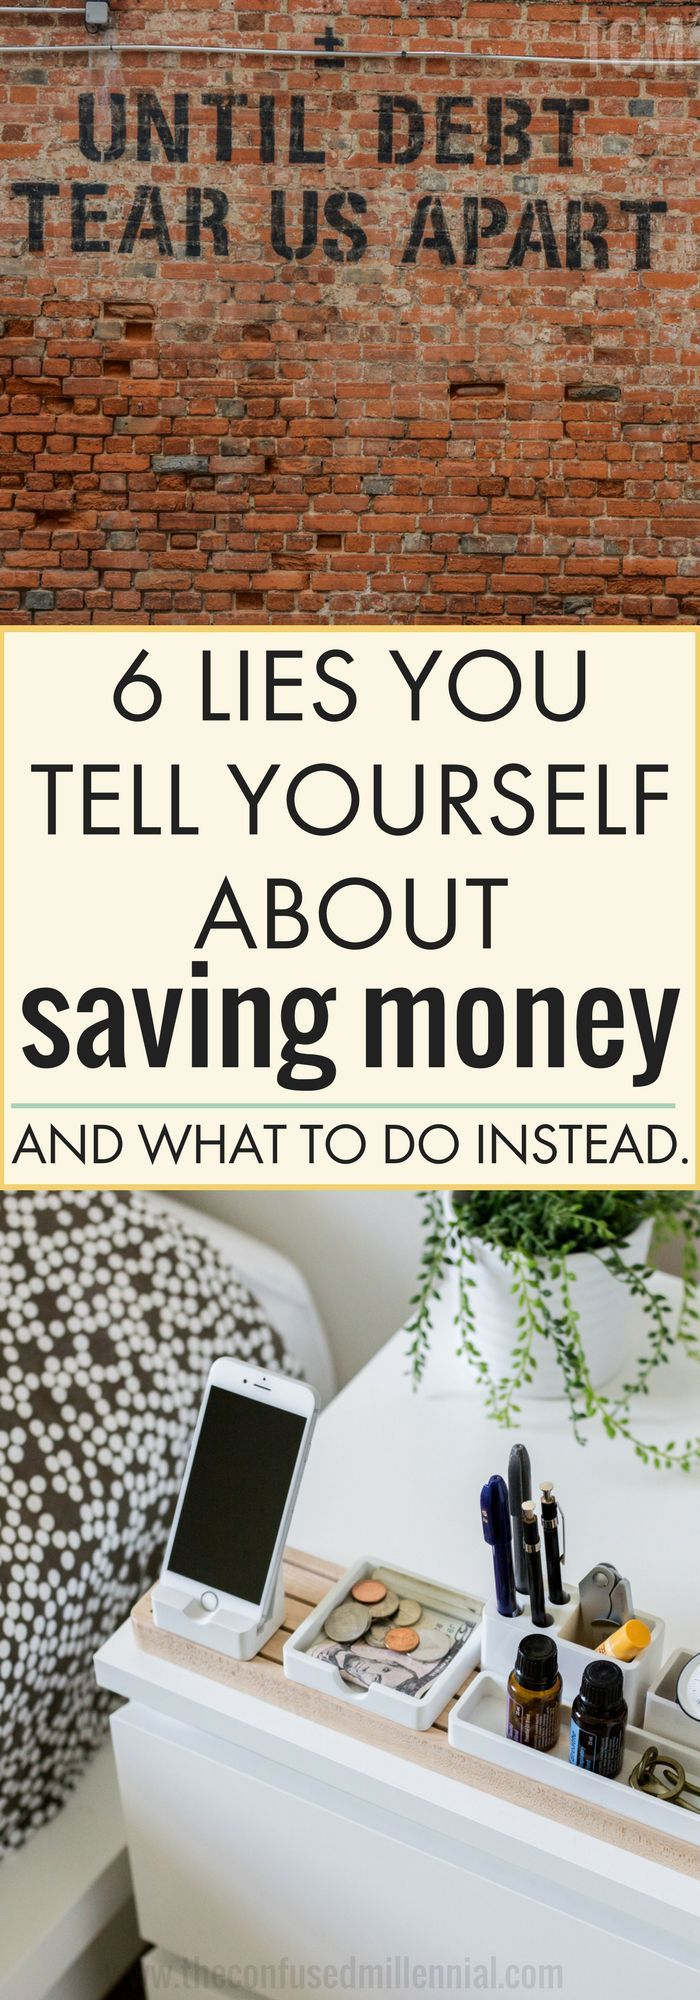 saving money ideas in your 20s, saving money tips, frugal living